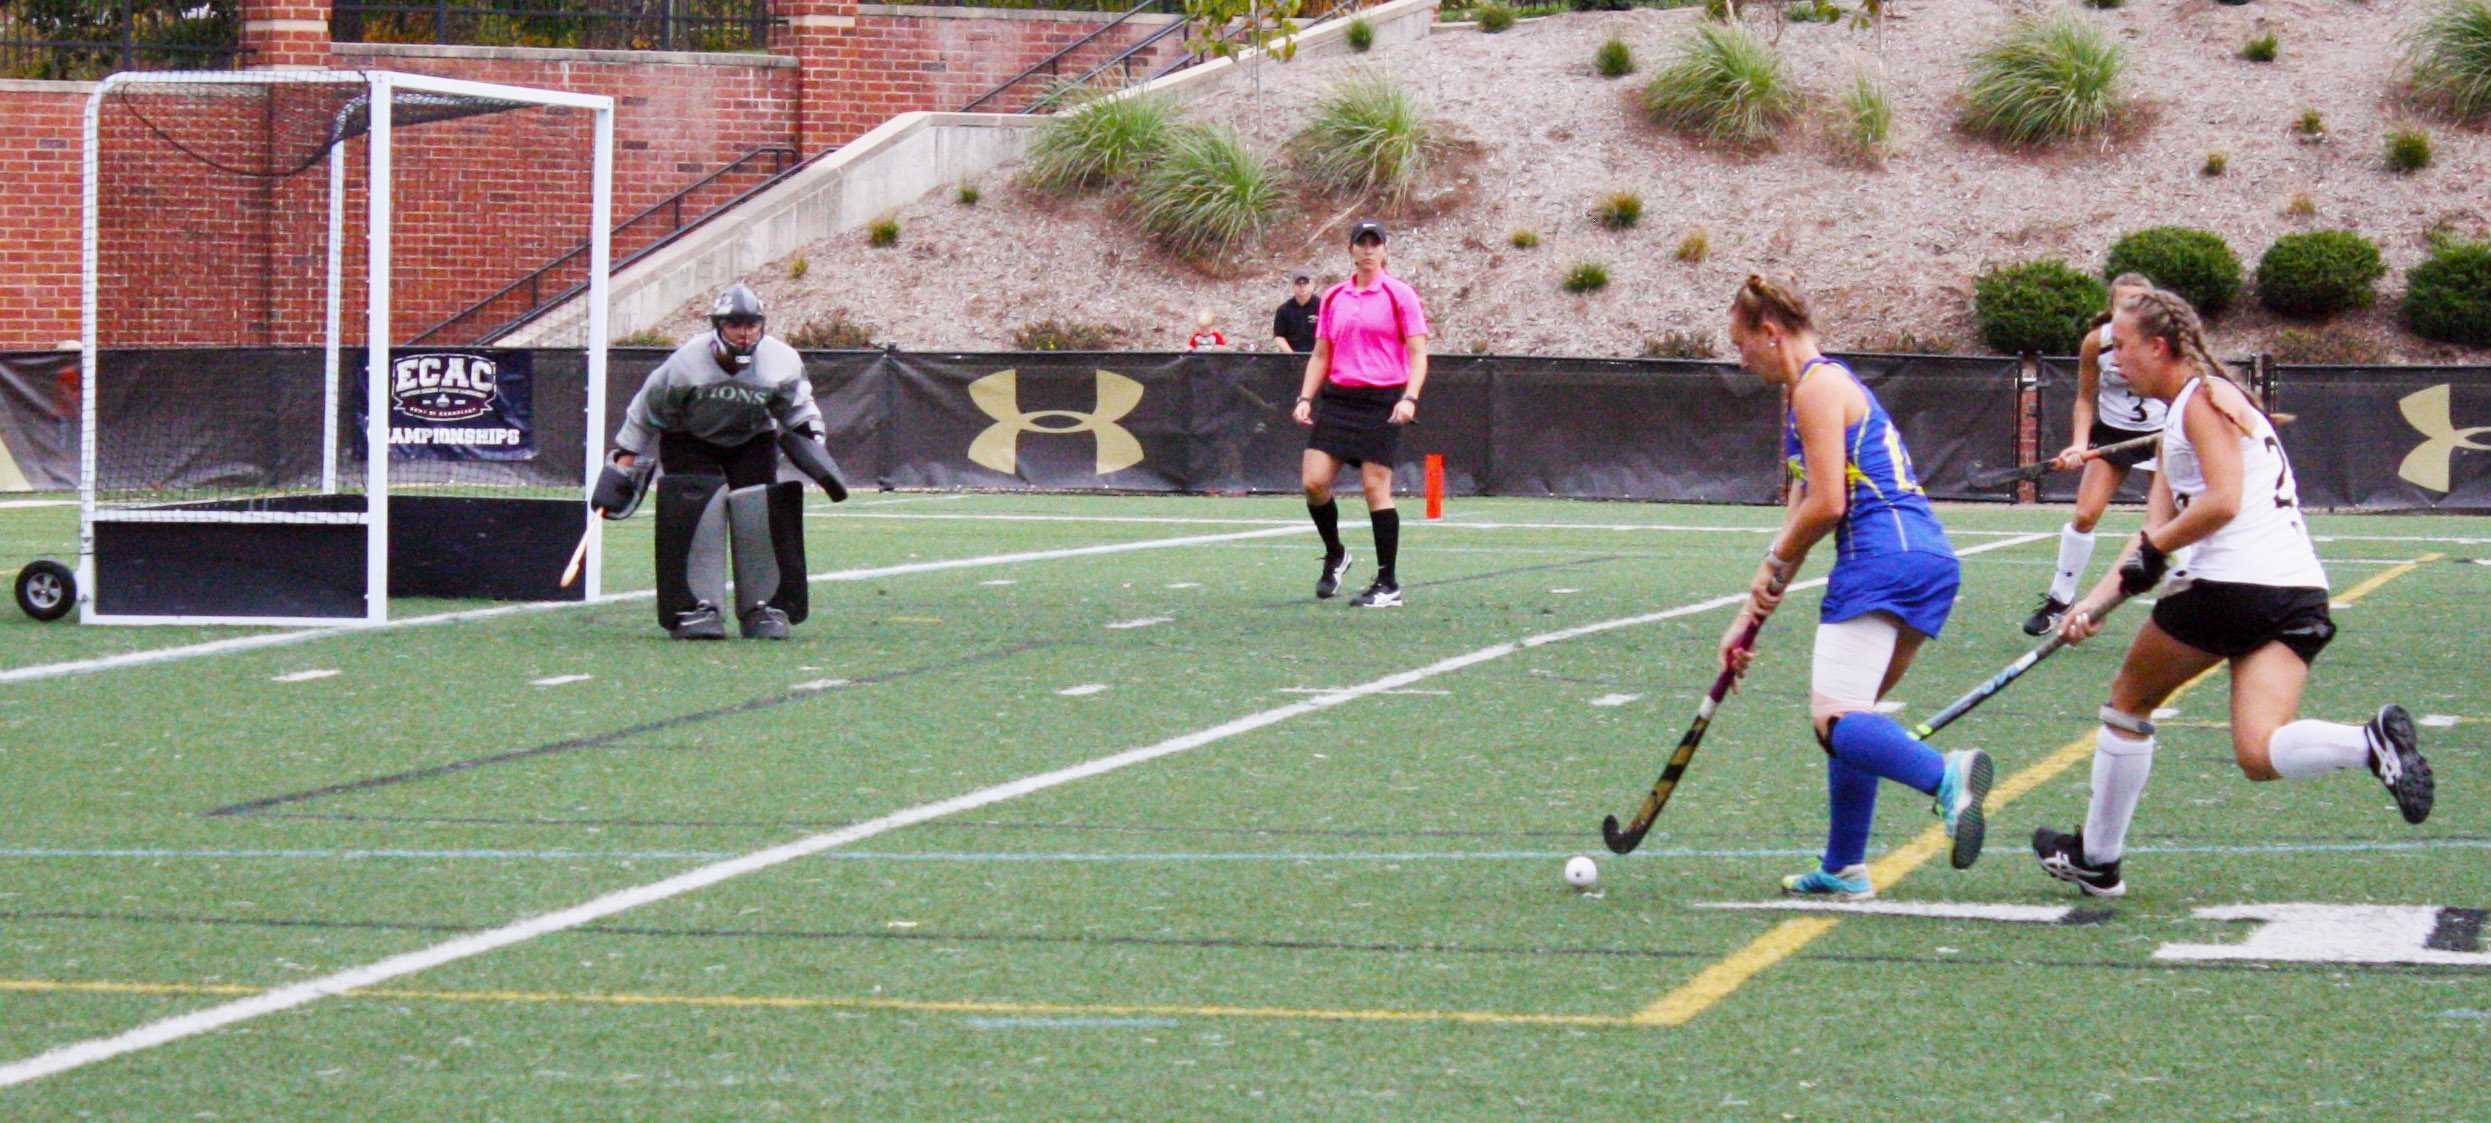 File photo: Field hockey goalie Skylar Starbeck looks to make a save in the ECAC championship game against Limestone College on Sunday, Nov. 5, 2017 at the Harlen C. Hunter Stadium. Photo by Madeline Raineri.